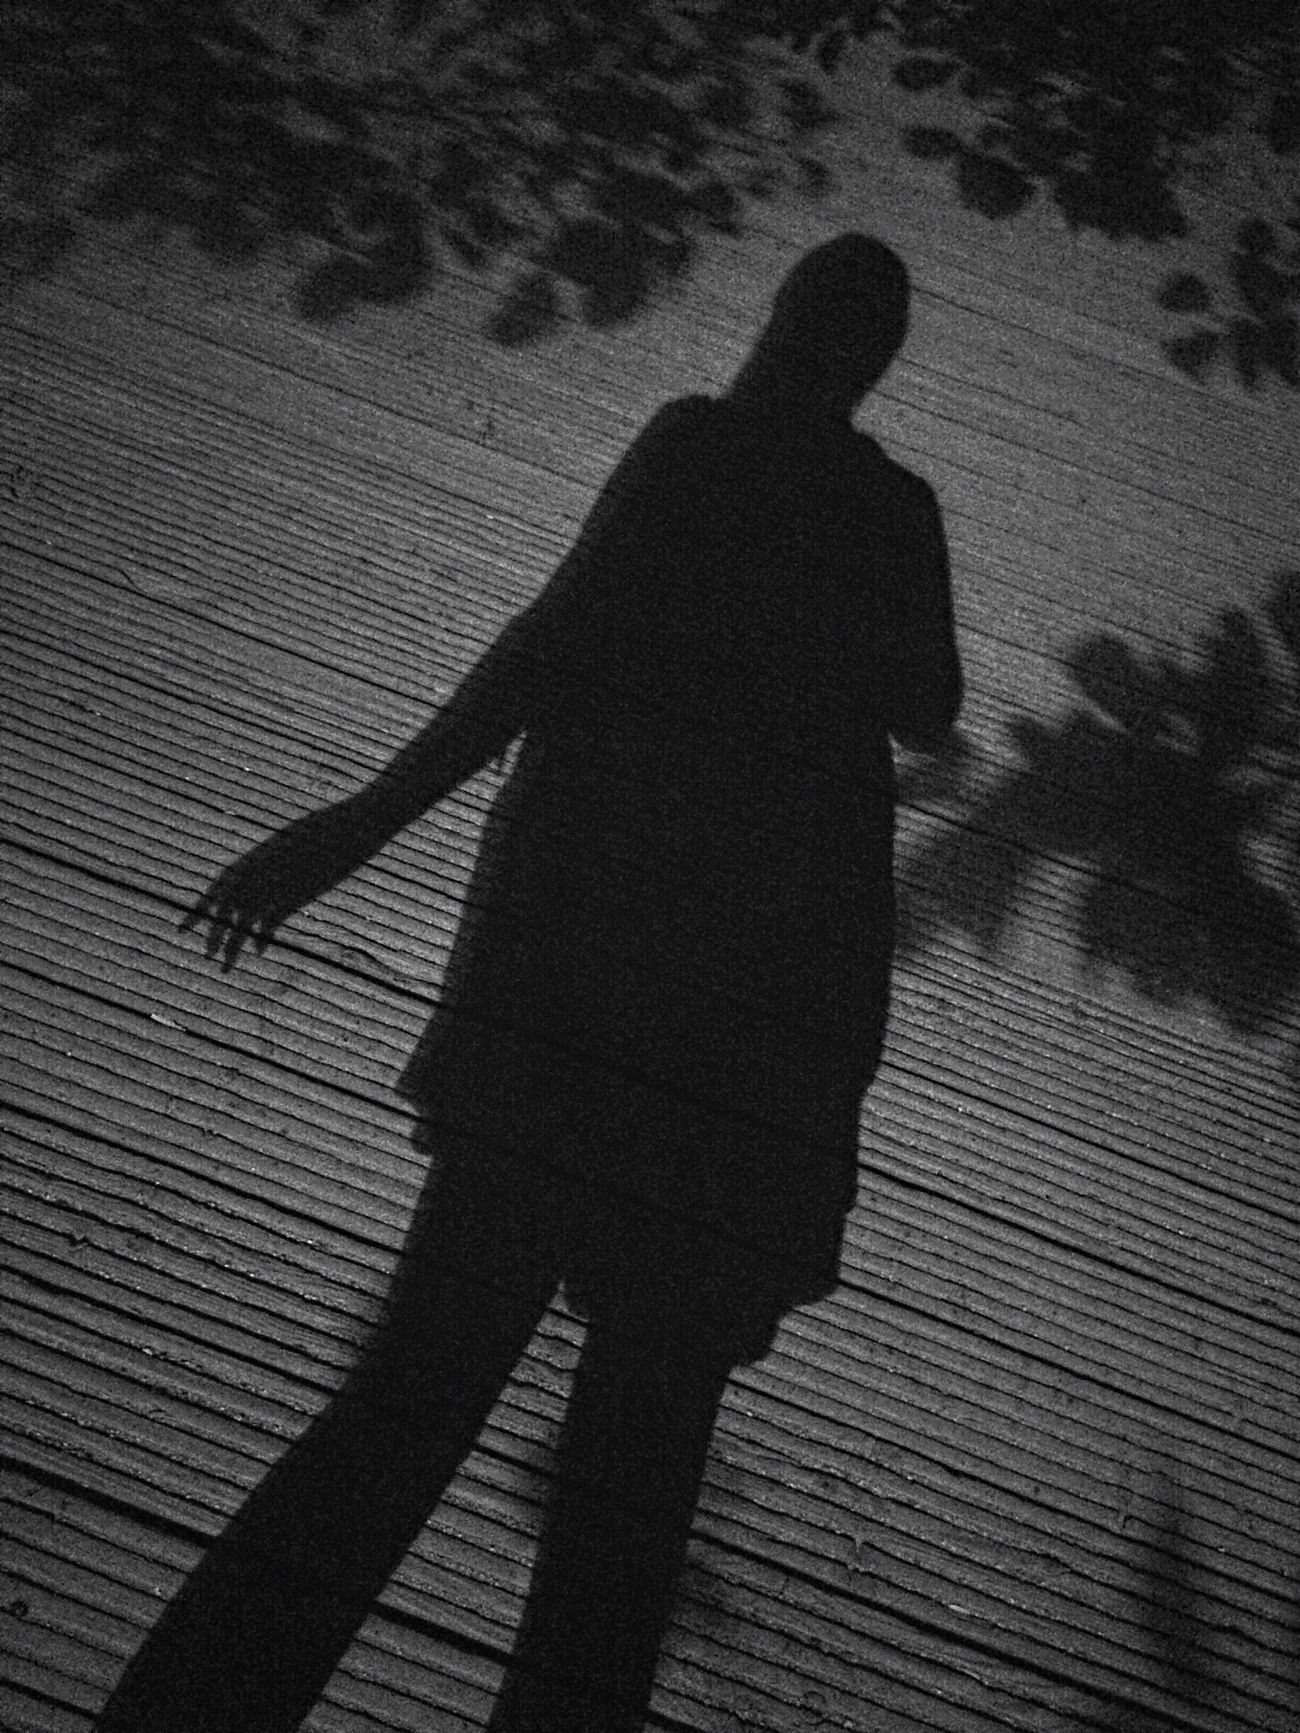 Self Portrait Portrait Female Iphonography Iphoneonly Blackandwhite Night Nightwalk Alone... Shadow Flower Shadow Bridge Way Unrecognizable Person Unrecognizable Long Natural Frame Mangraphy